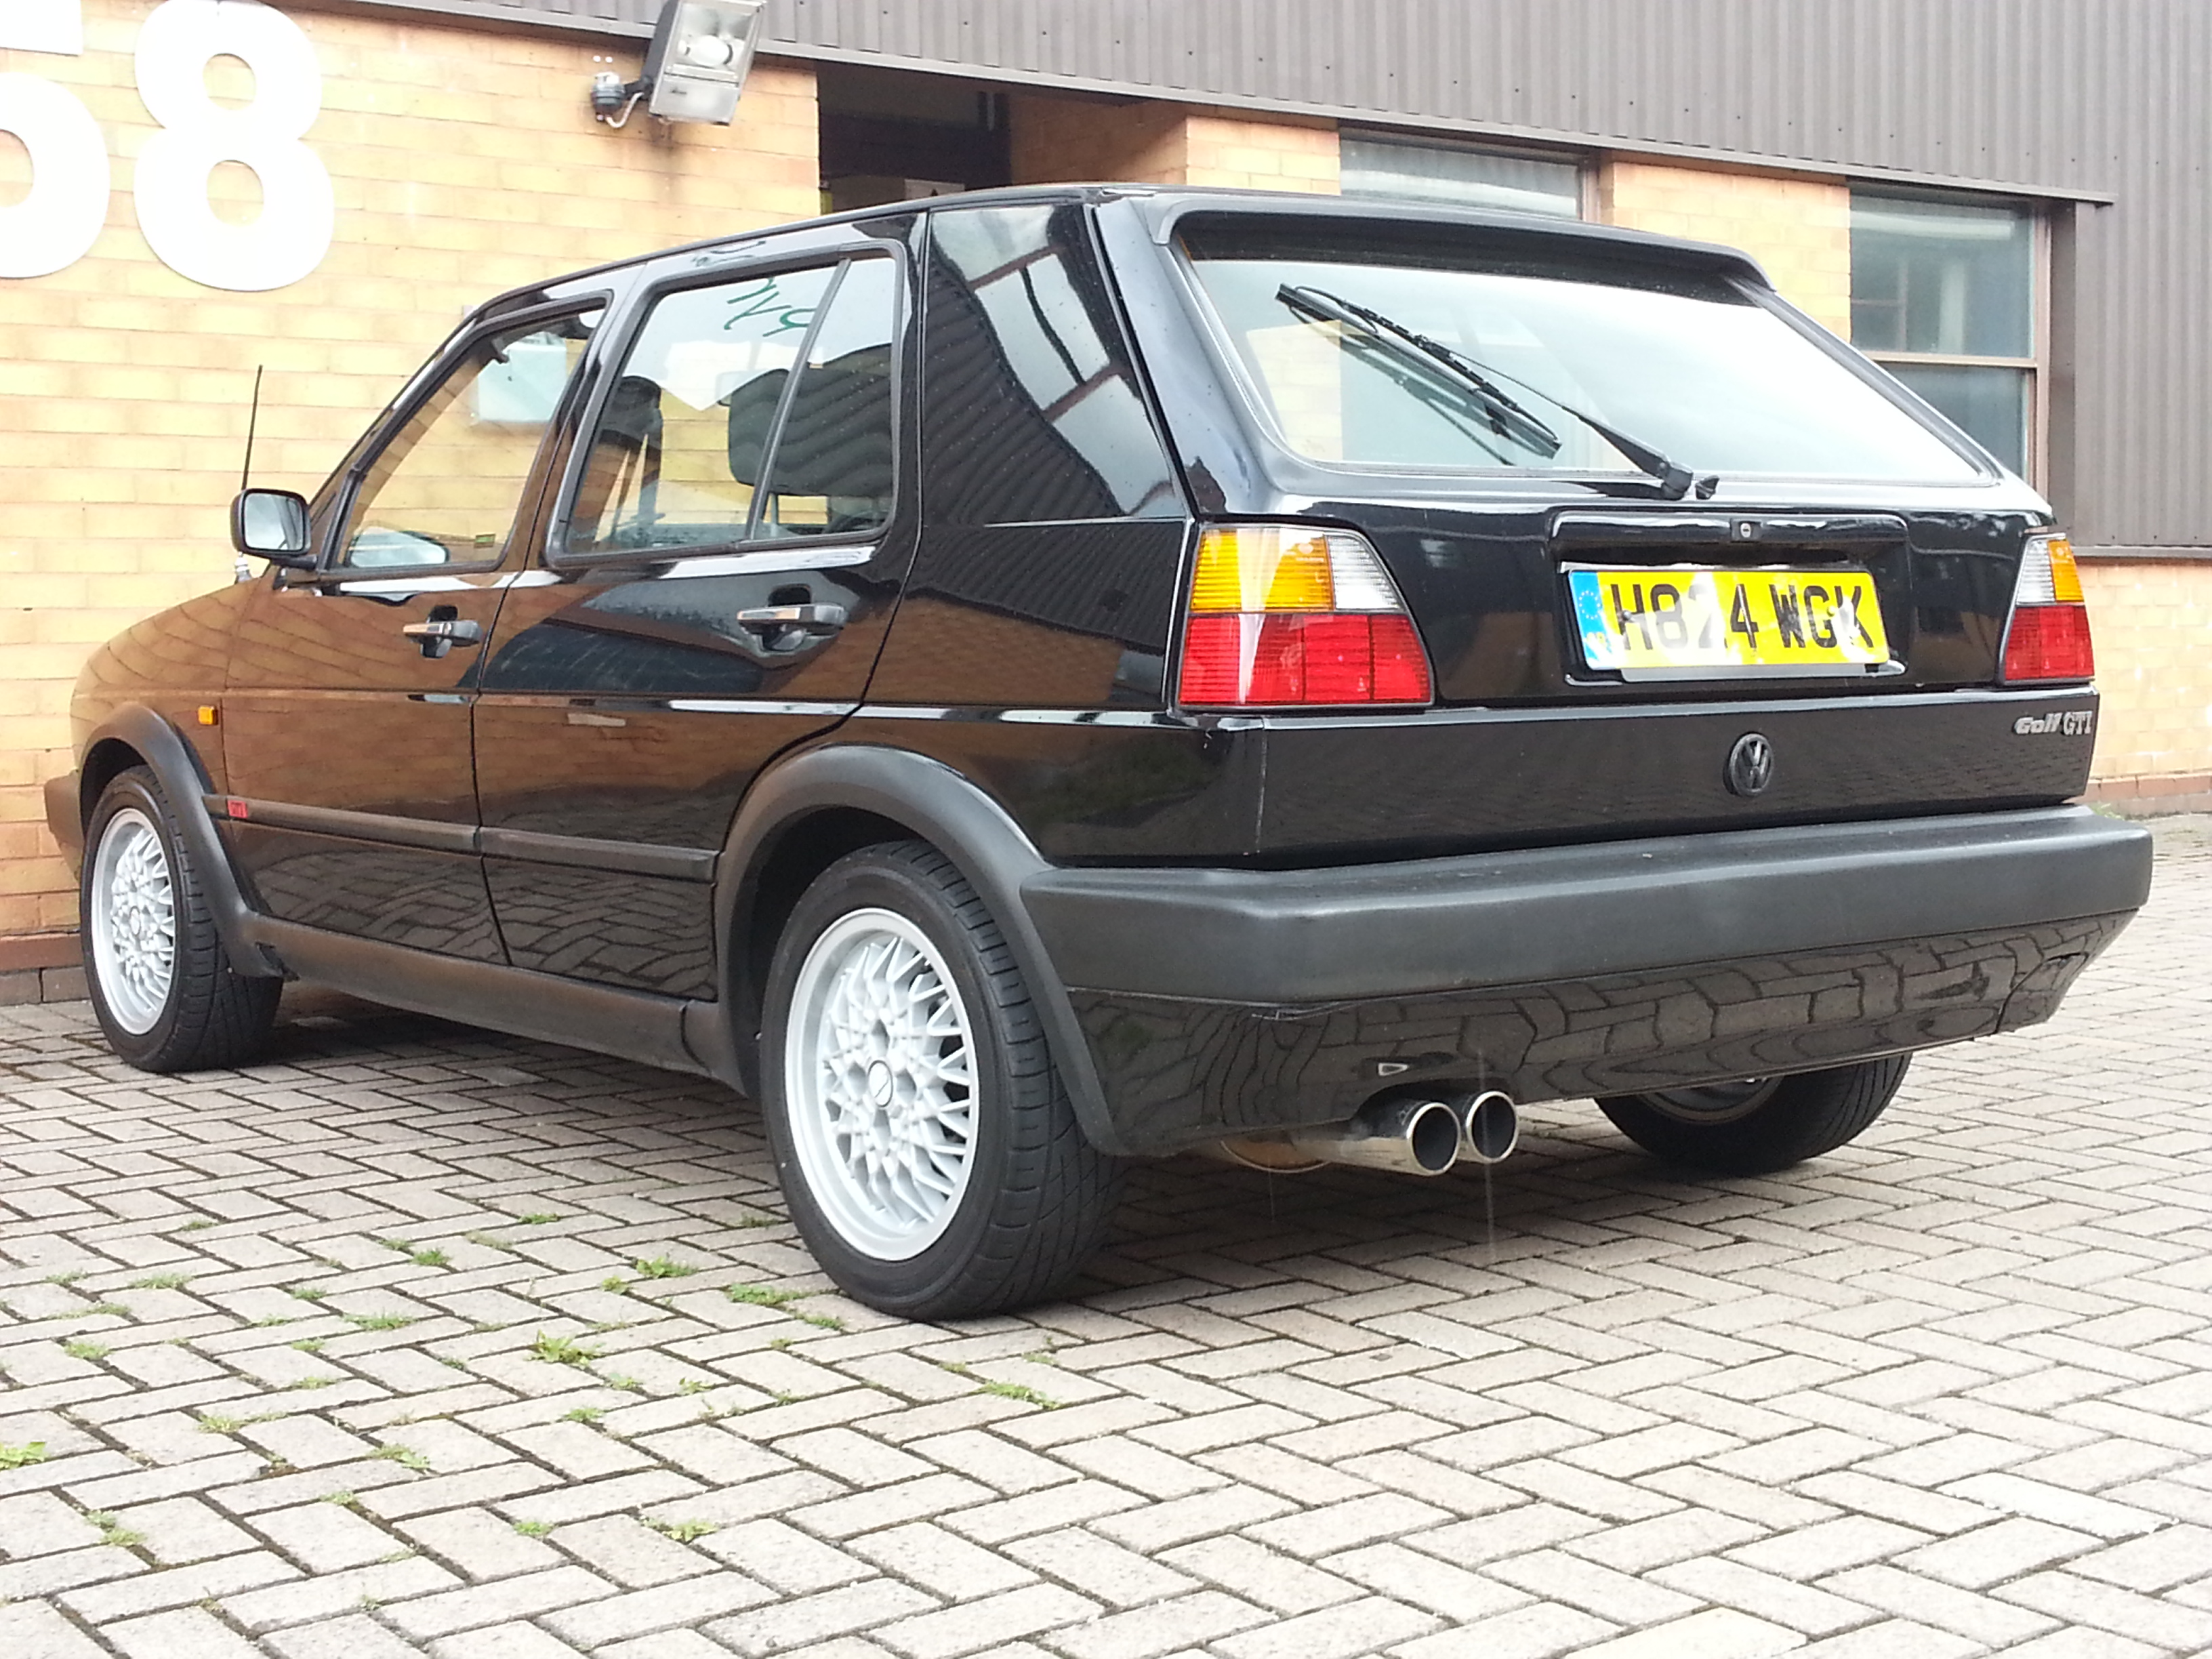 Vehicles For Sale: VW Golf Mk2 OC - Cars For Sale